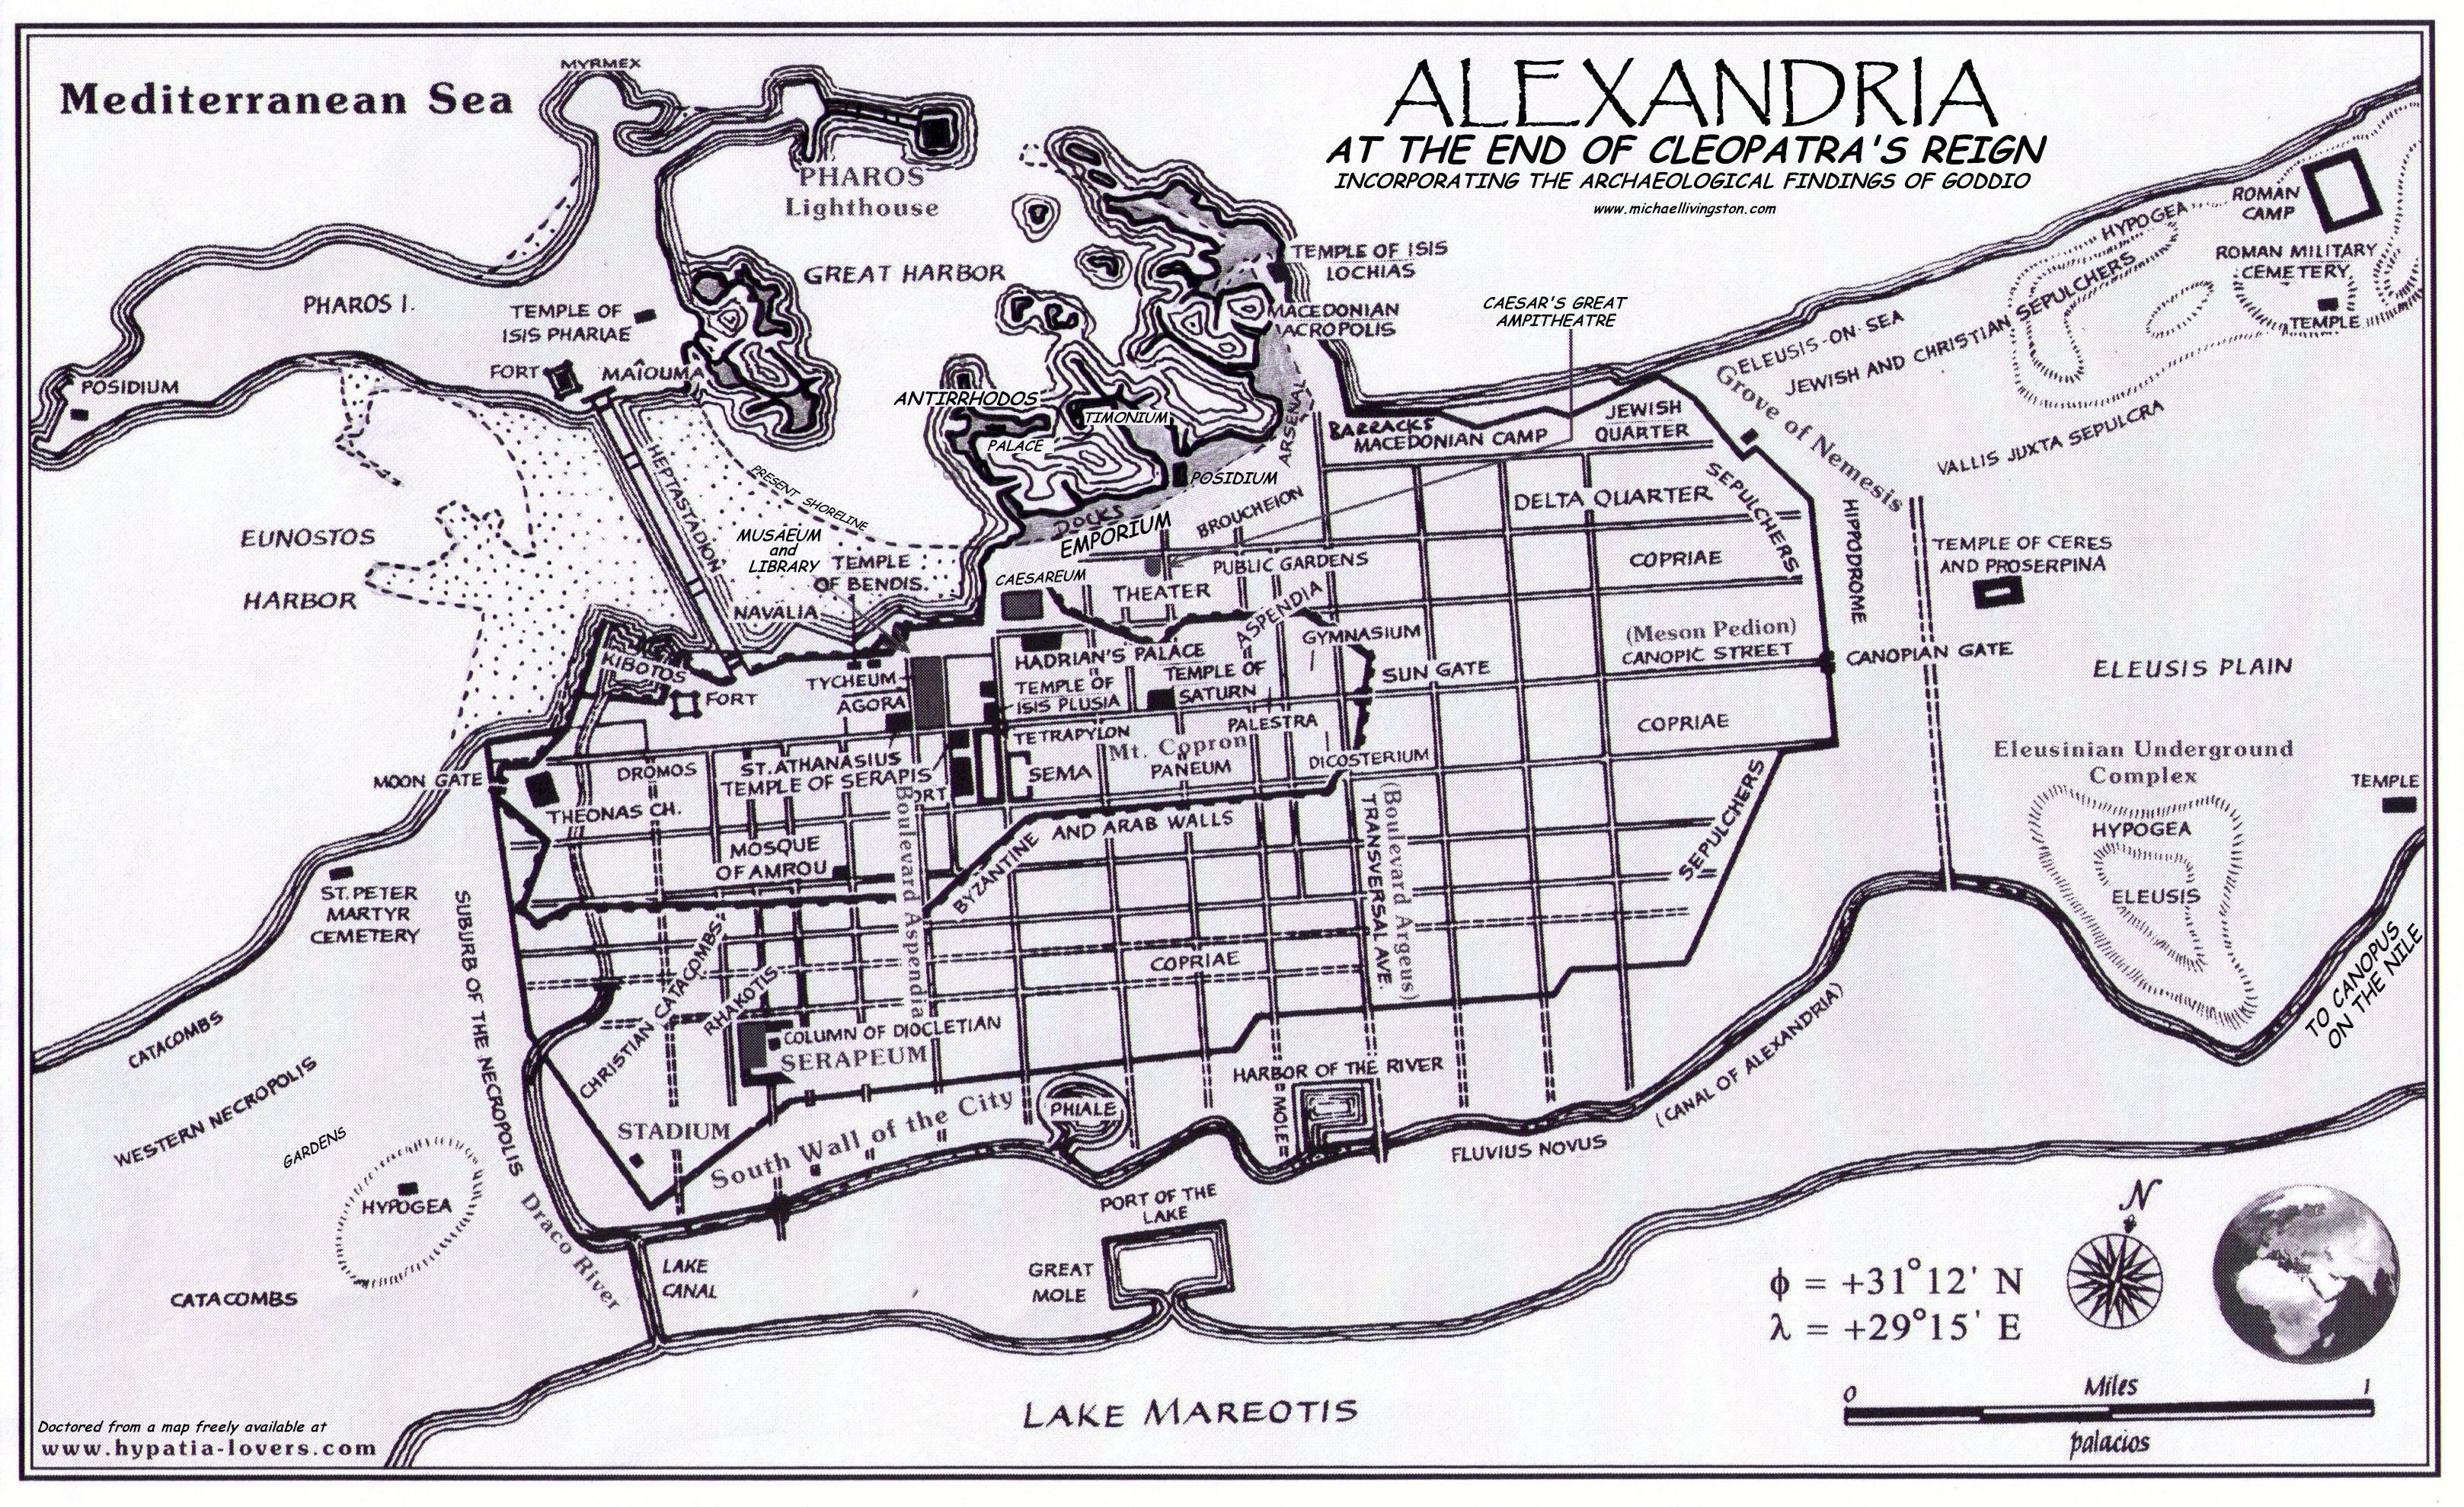 location map alexandria egypt and rome